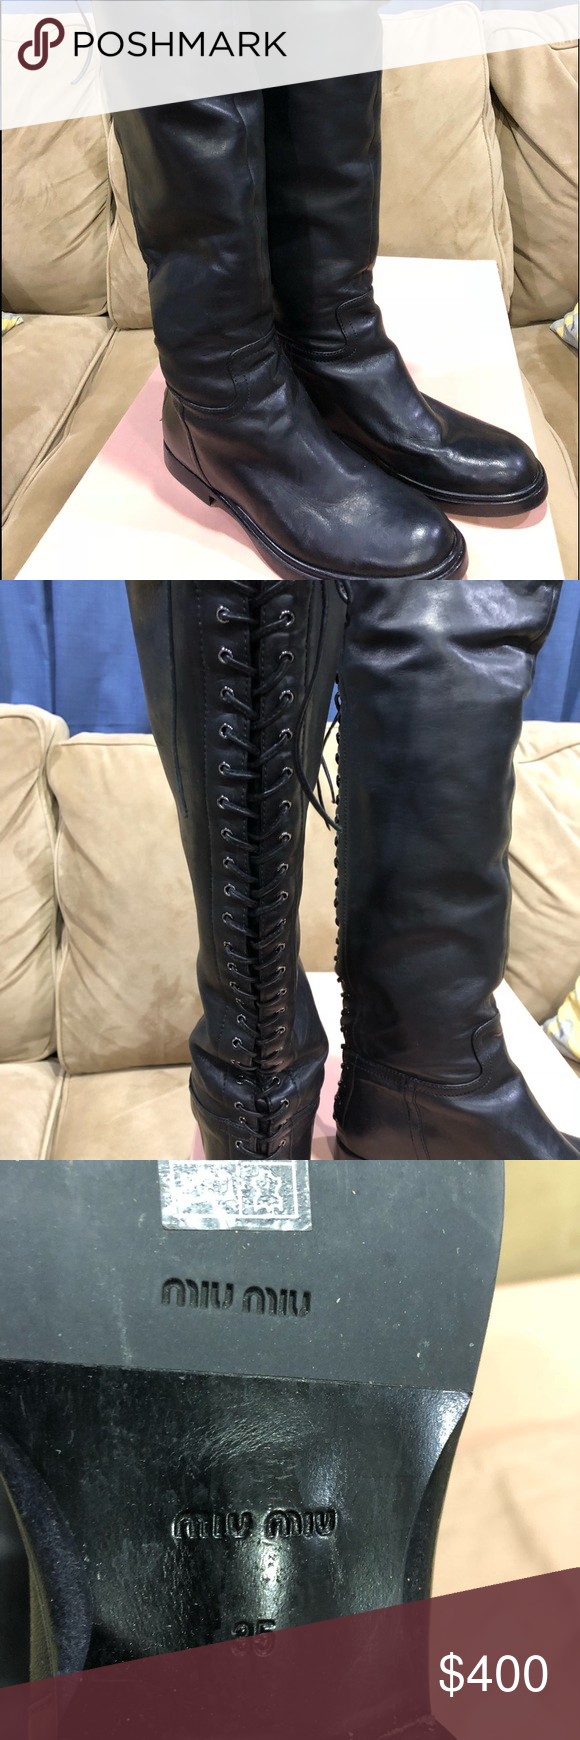 c4ca248a7033 Miu Miu Lace up back tall Boot Amazing looking boots by Miu Miu Prada.  Purchased at Barney s New York. In excellent condition. Worn twice.